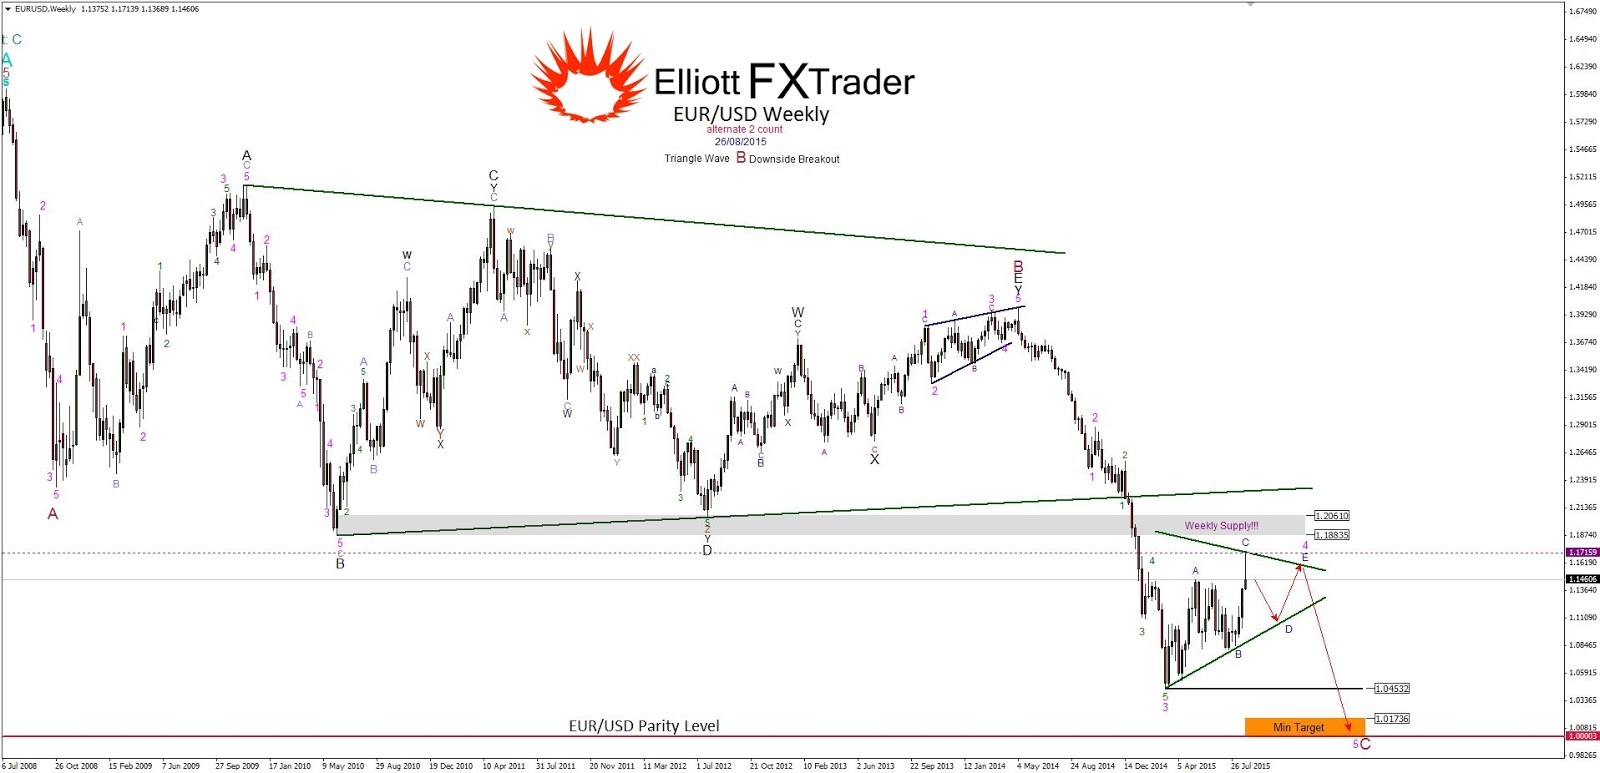 Best elliott wave trader blog  :: unadacma ml